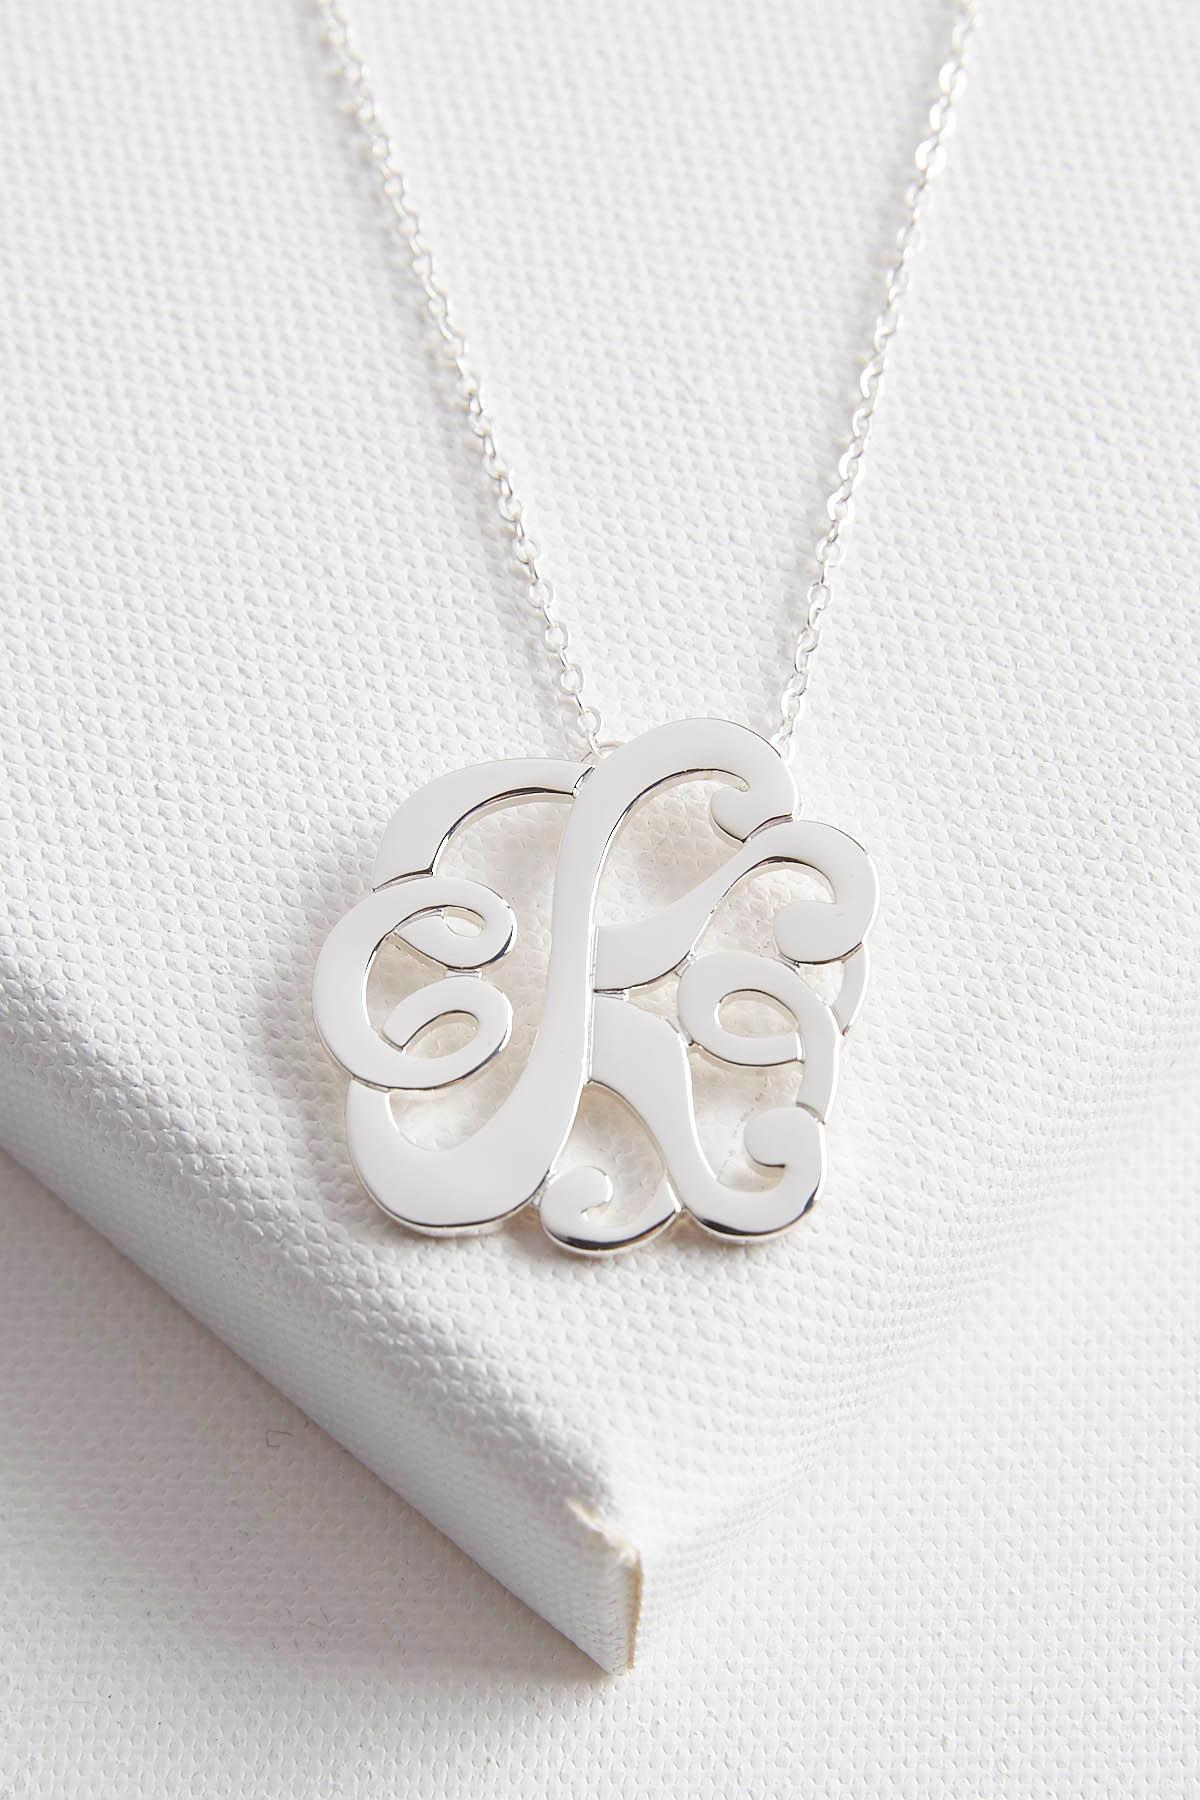 Initial Scroll Brass Pendant Necklace- K